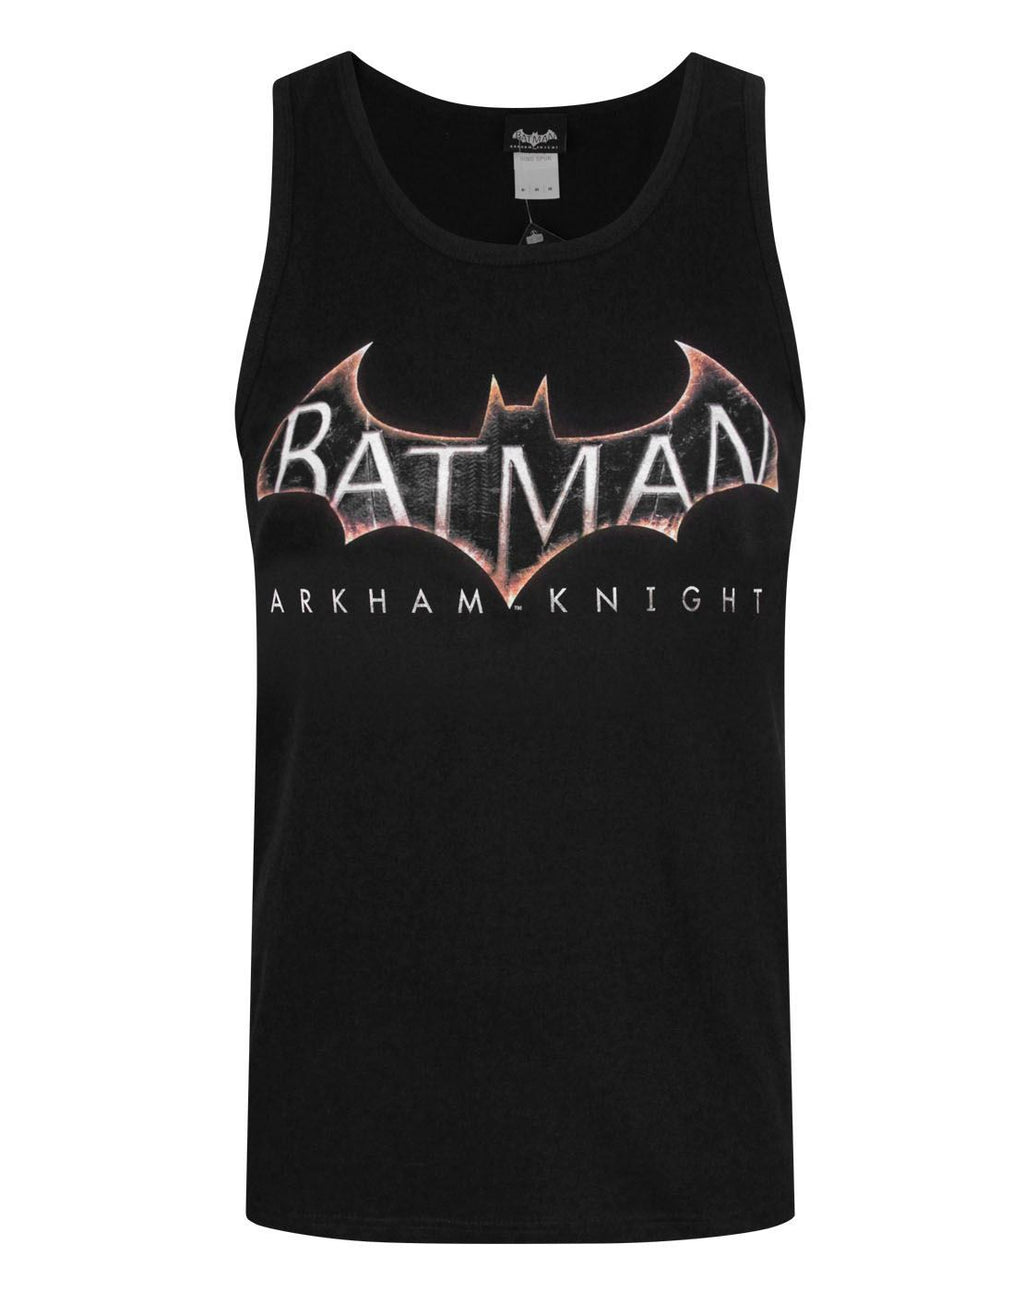 Batman Arkham Knight Men's Vest